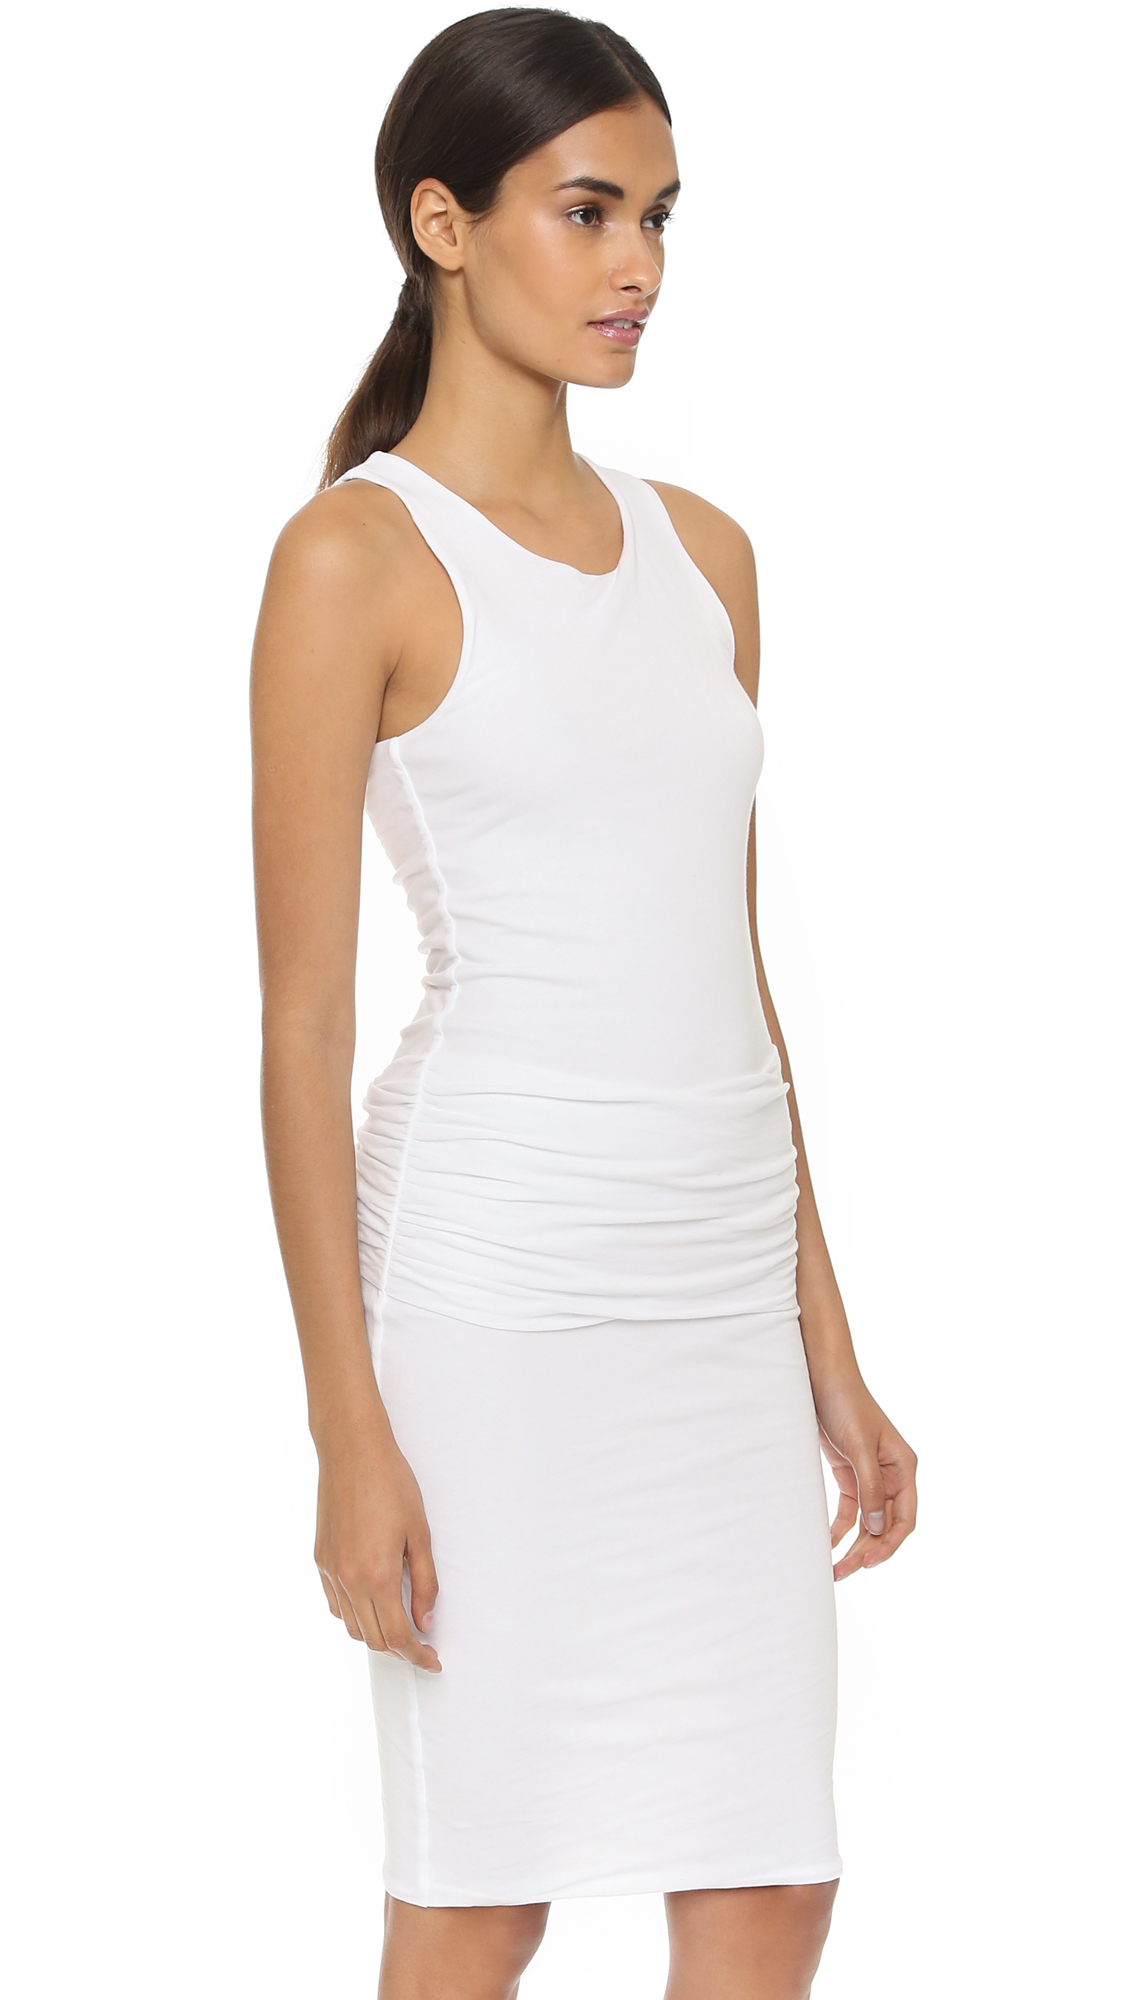 7e3222f449 James perse Ruched Tank Dress in White